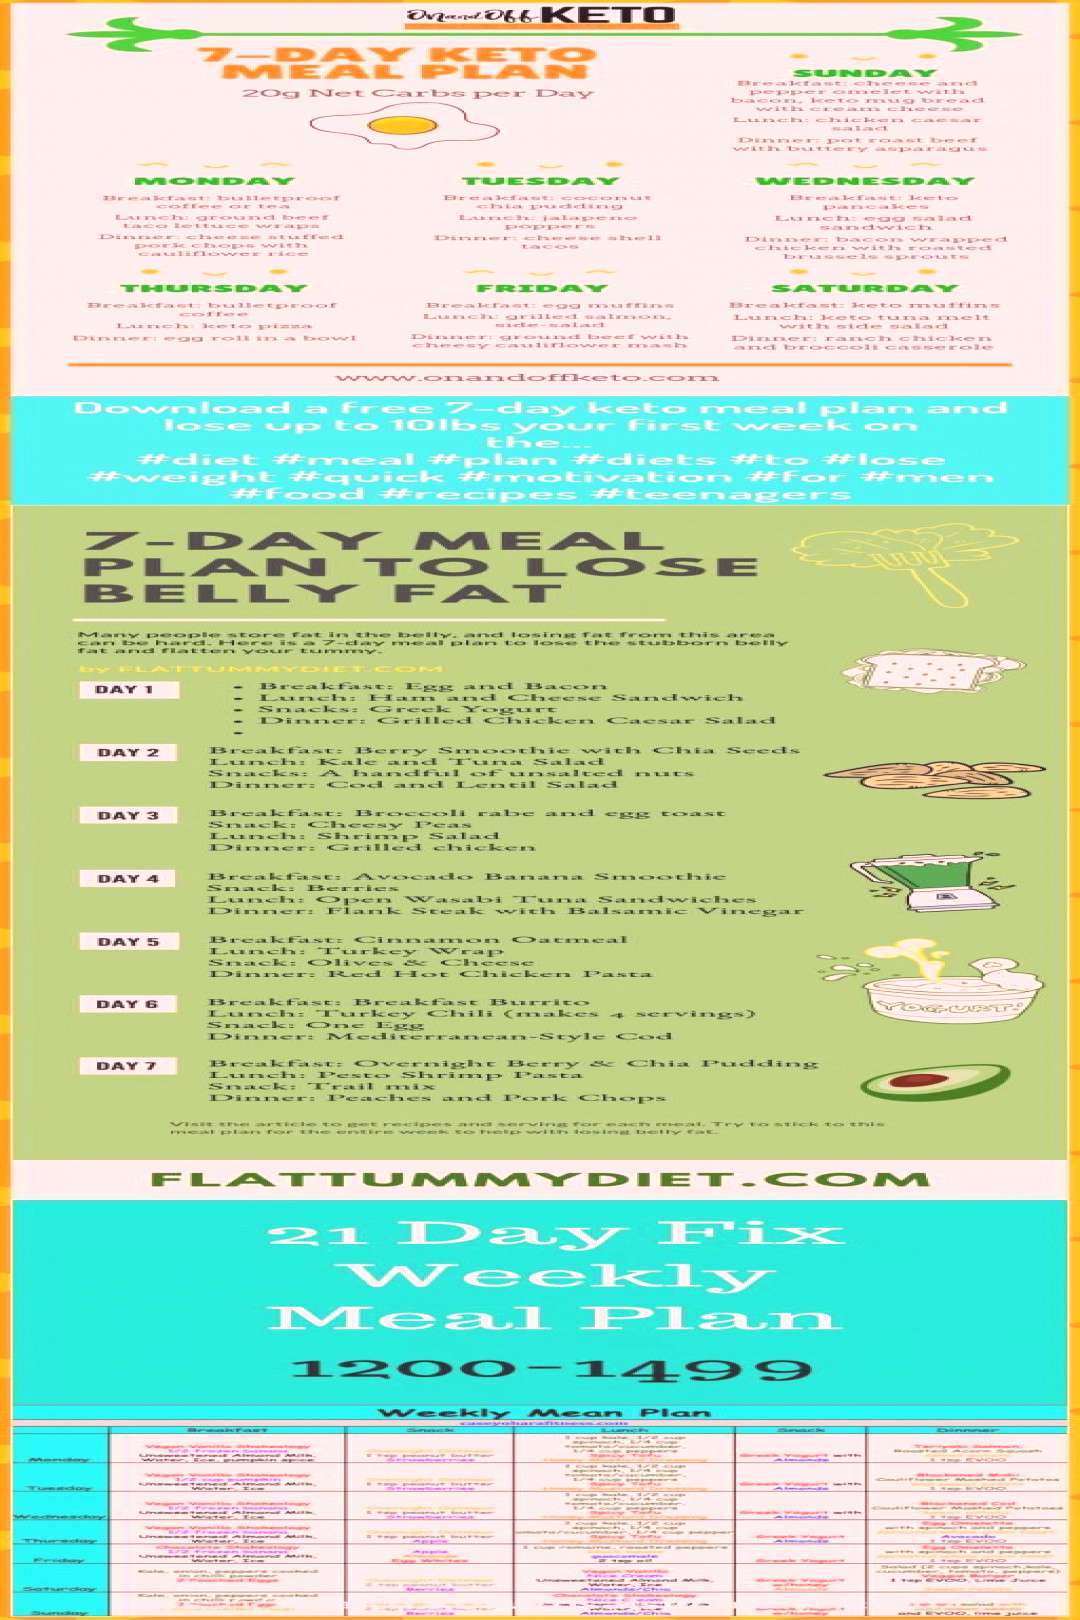 Download a free 7-day keto meal plan and lose up to 10lbs your first week on the...